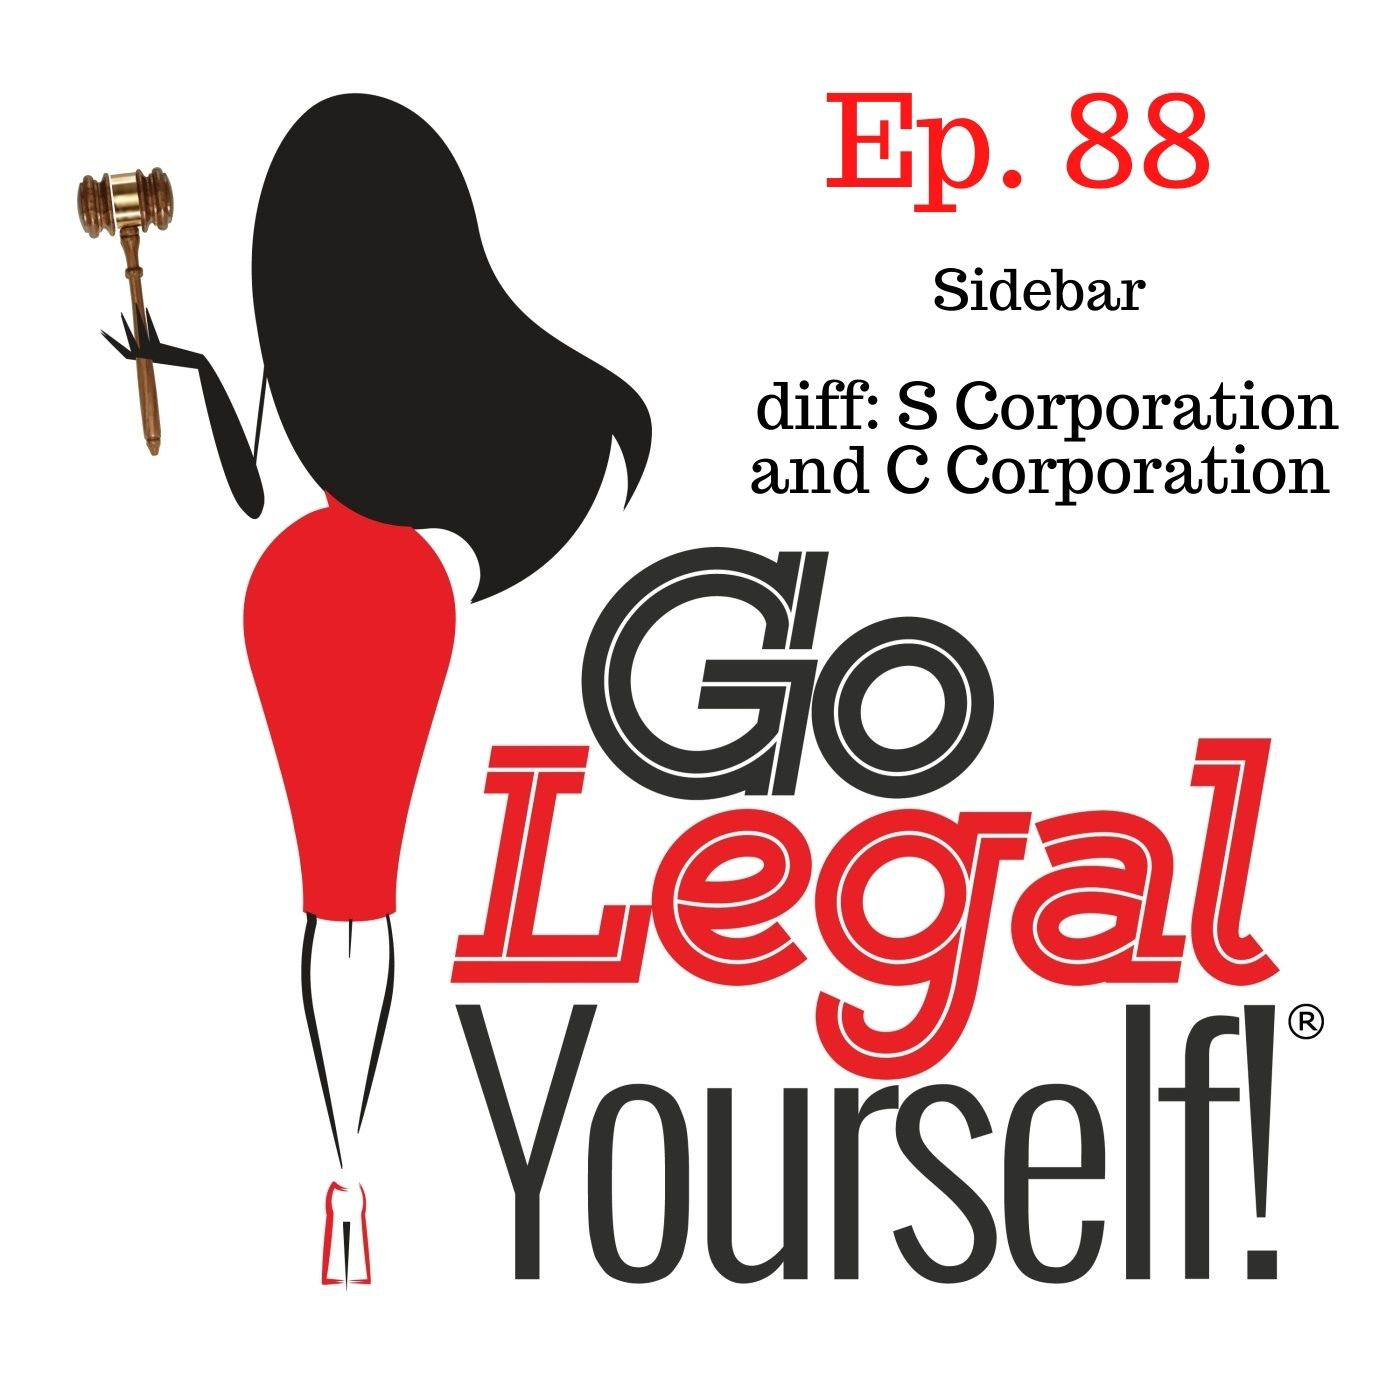 Ep. 88 Sidebar: What is The Difference between an S Corporation and a C Corporation?